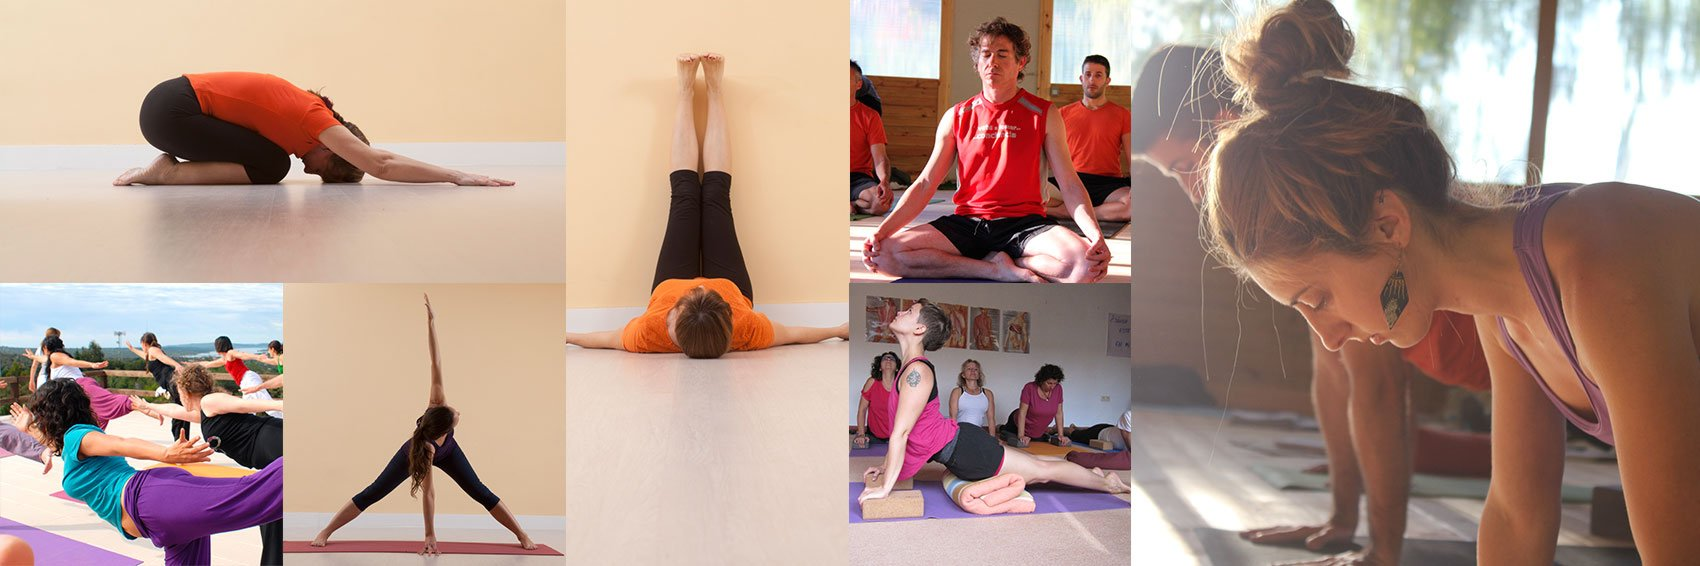 Collage Profesores de Yoga